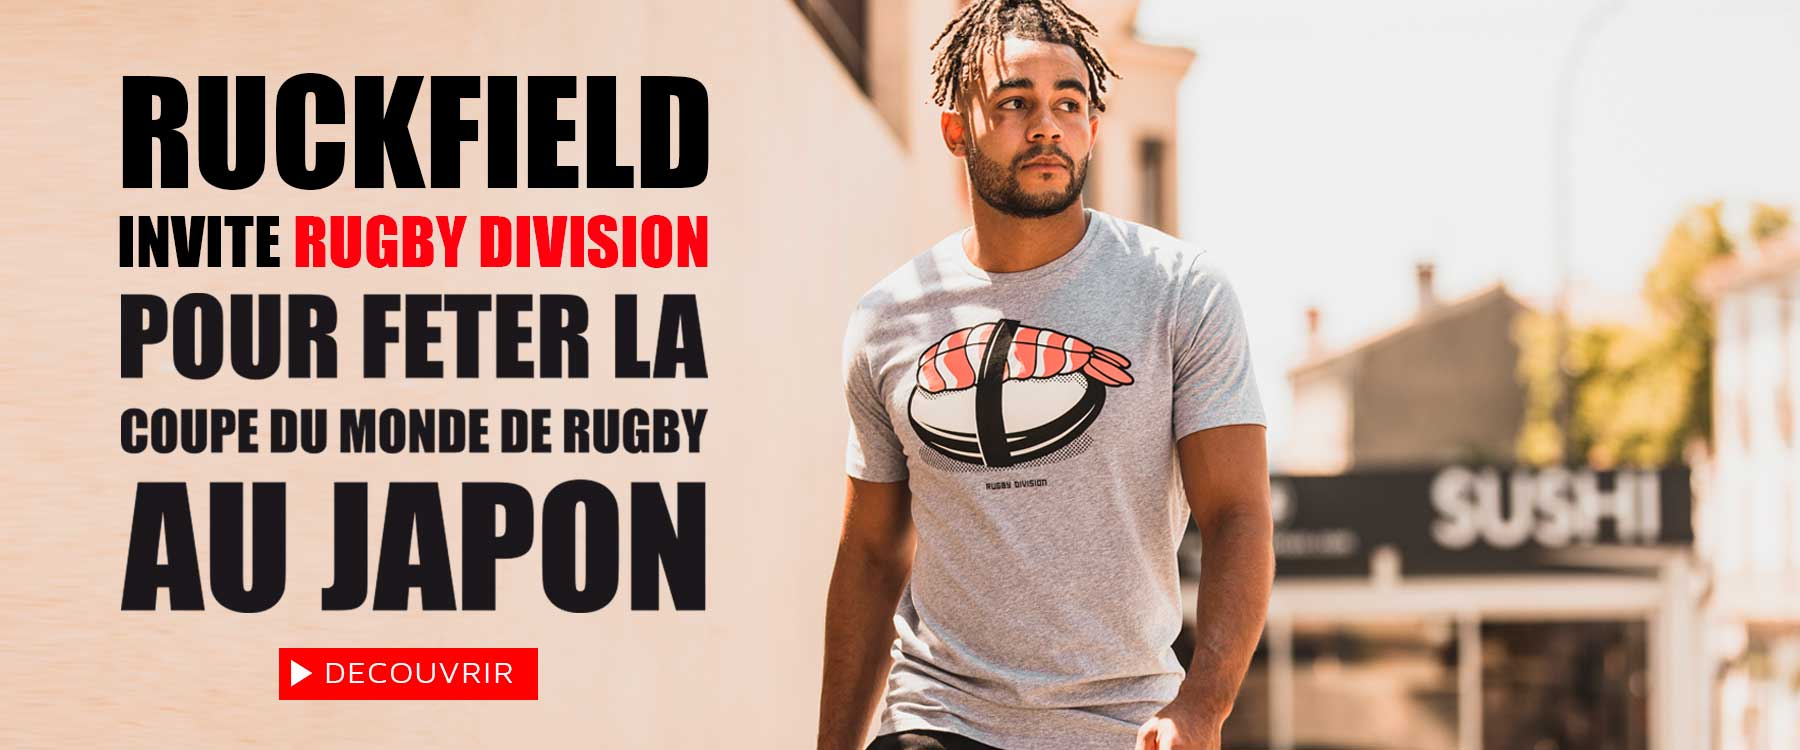 Ruckfield invite Rugby Division